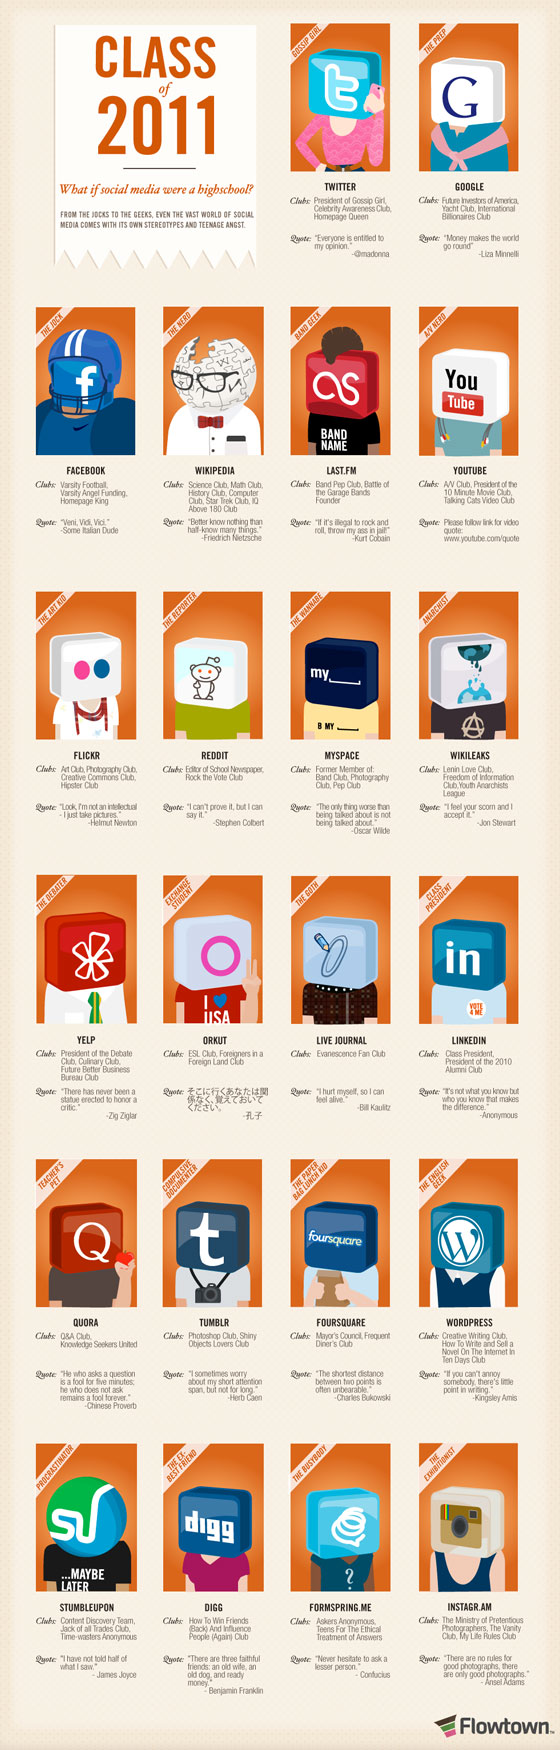 if-social-media-were-a-high-school 50 Best Infographics Designs Inspirations